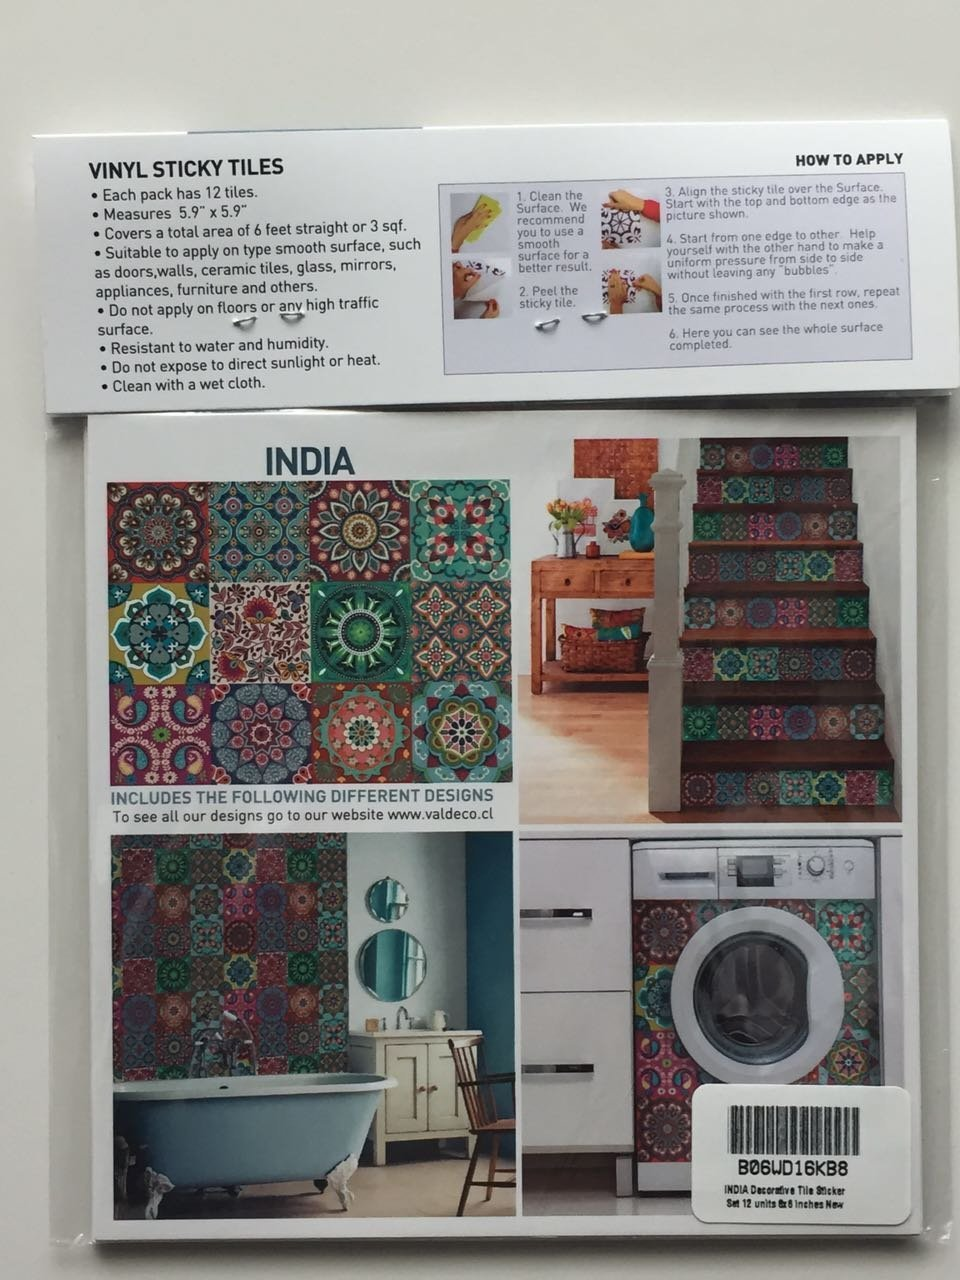 Amazon India Decorative Tile Stickers Set 12 Units 6x6 Inches